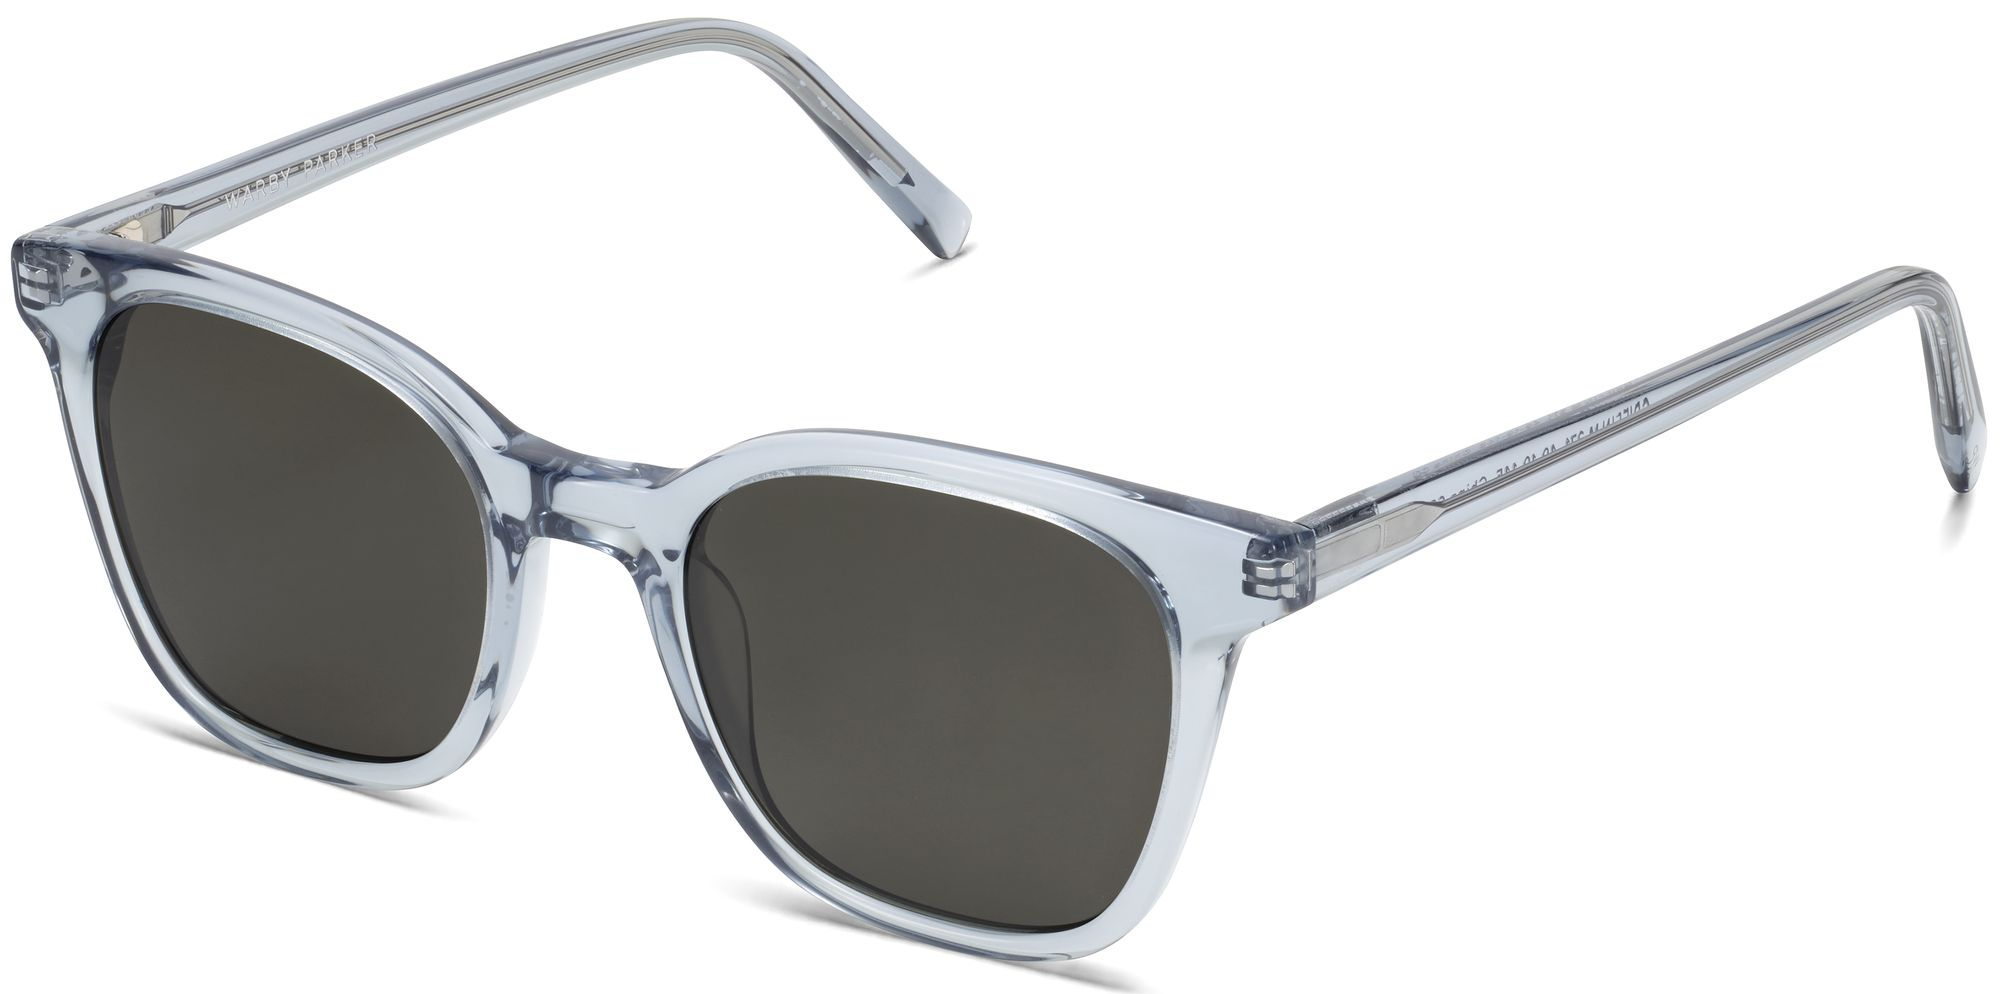 Angle View Image of Griffin Sunglasses Collection, by Warby Parker Brand, in Pacific Crystal Color